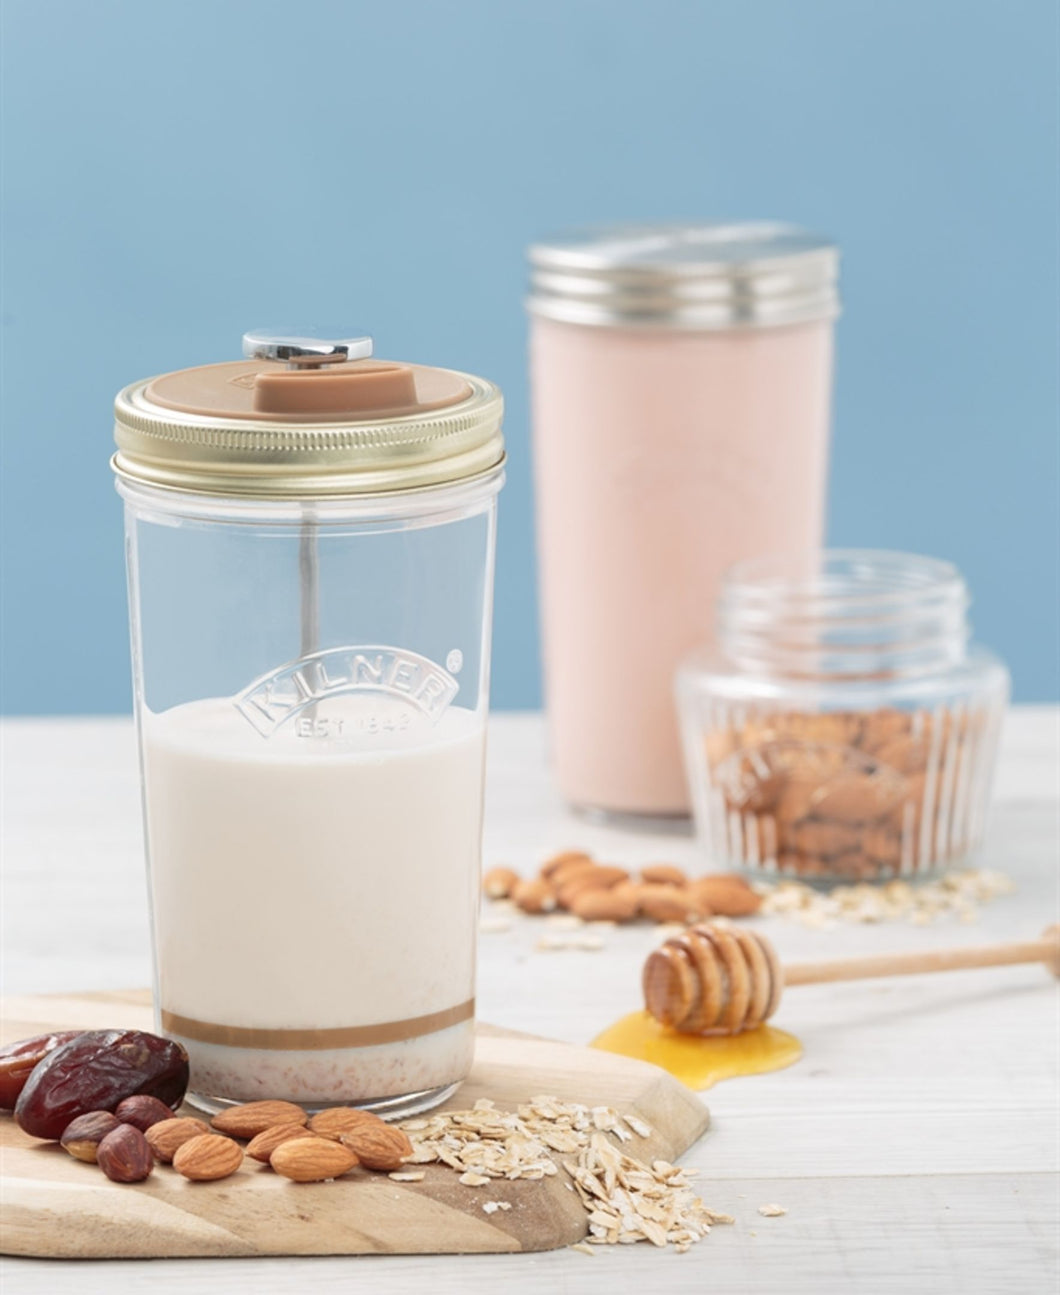 Kilner® Nut Drink Making Set 17 Us Fl Oz - Kilner US